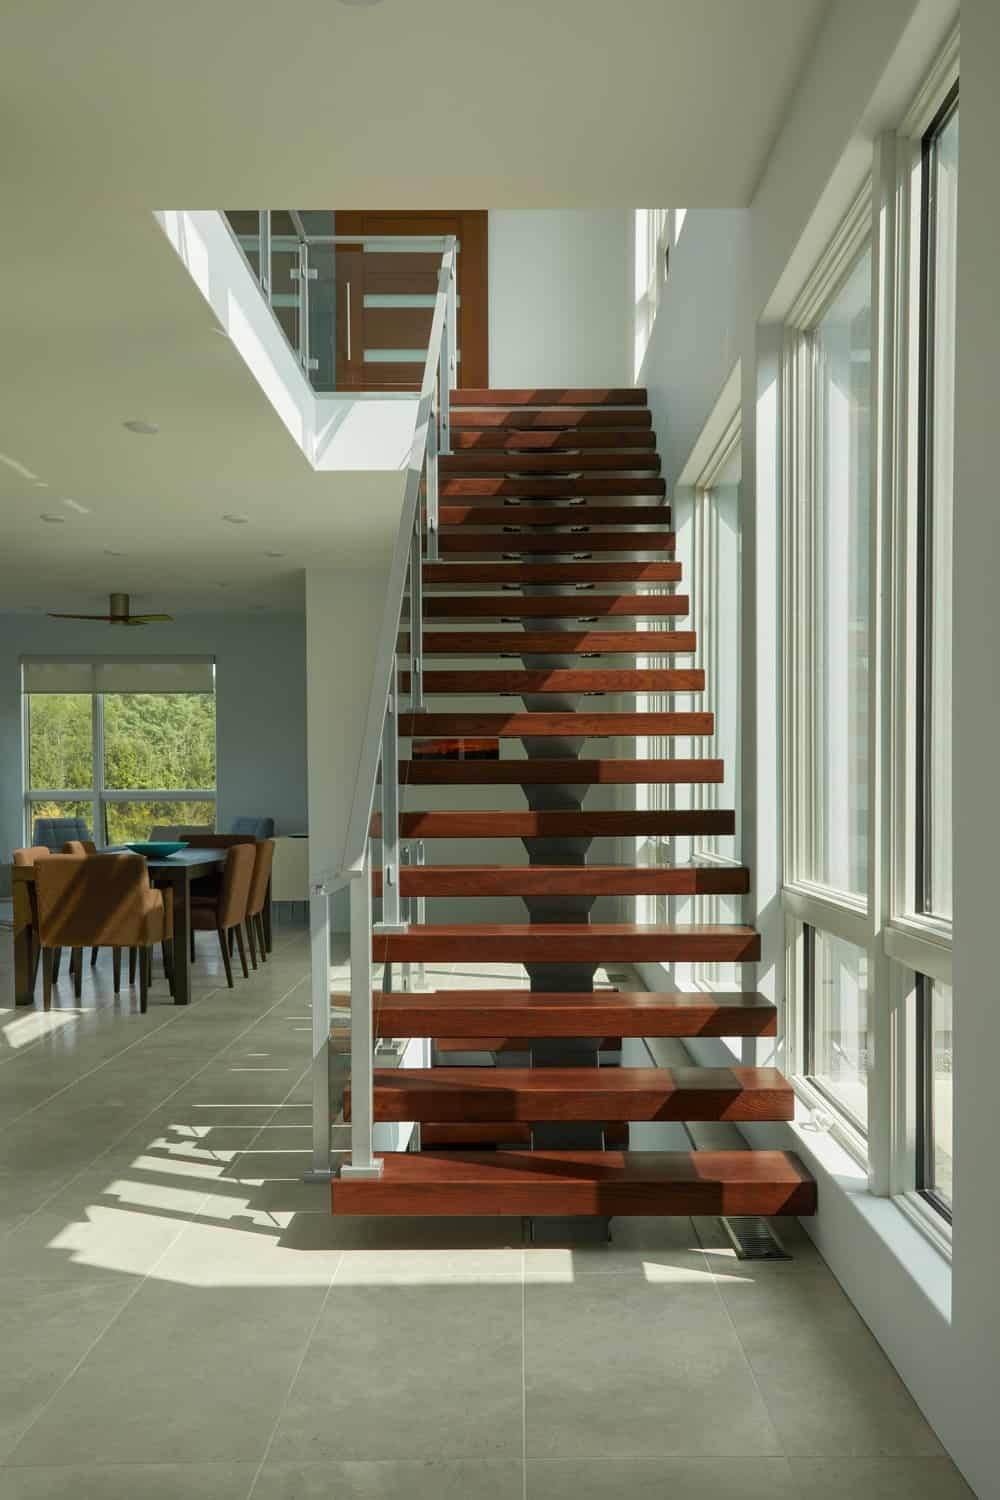 The staircase has dark wooden steps that appear to float with its glass elements on the sides.